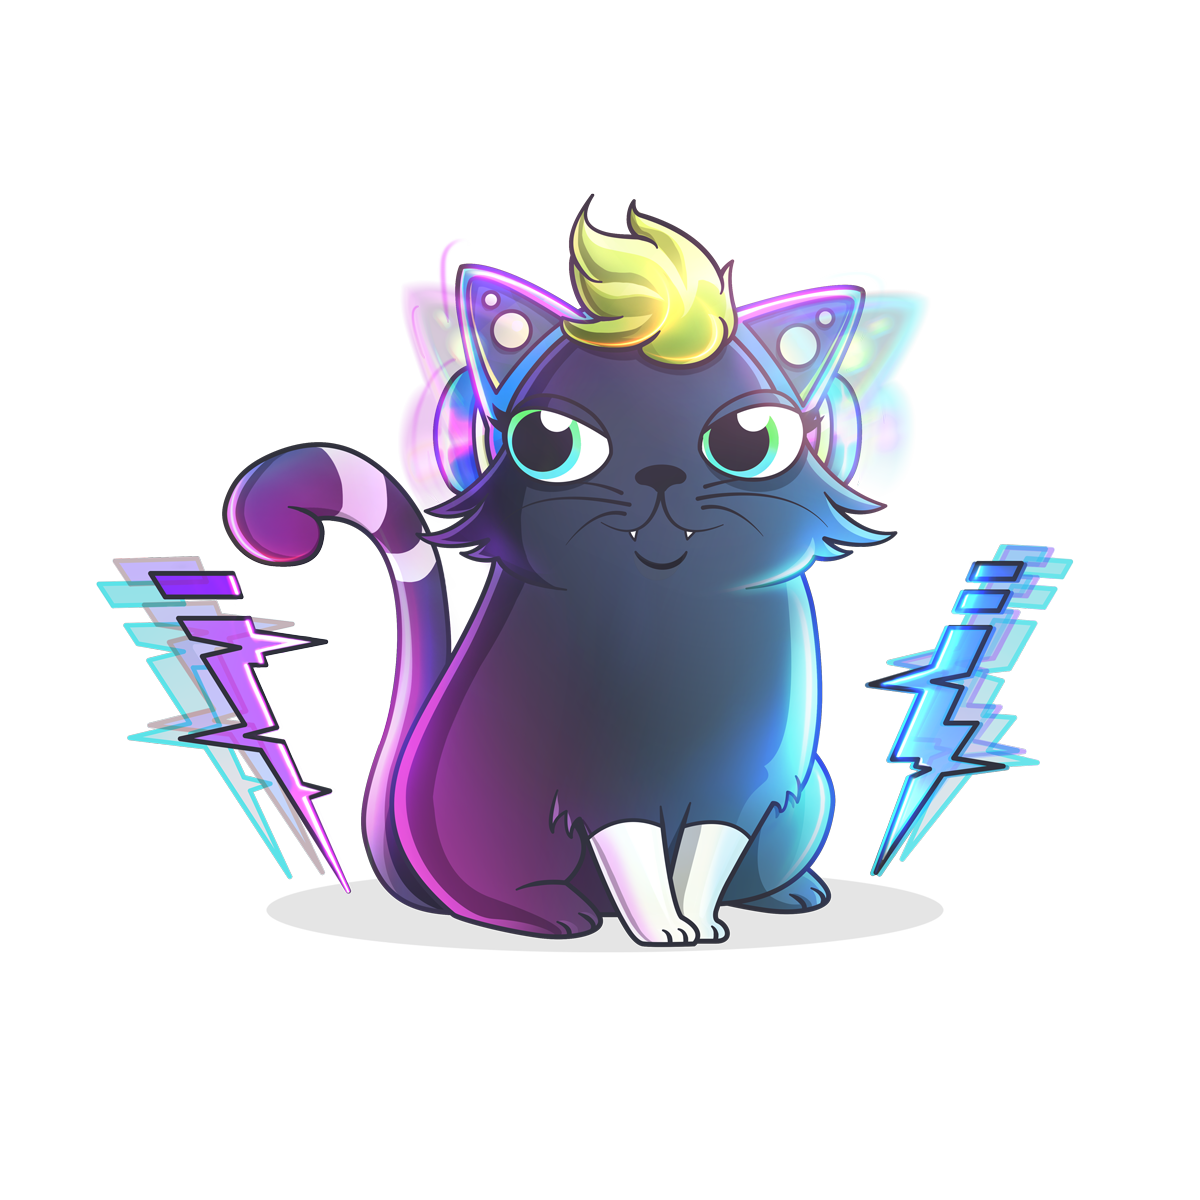 cryptokitty #1766173